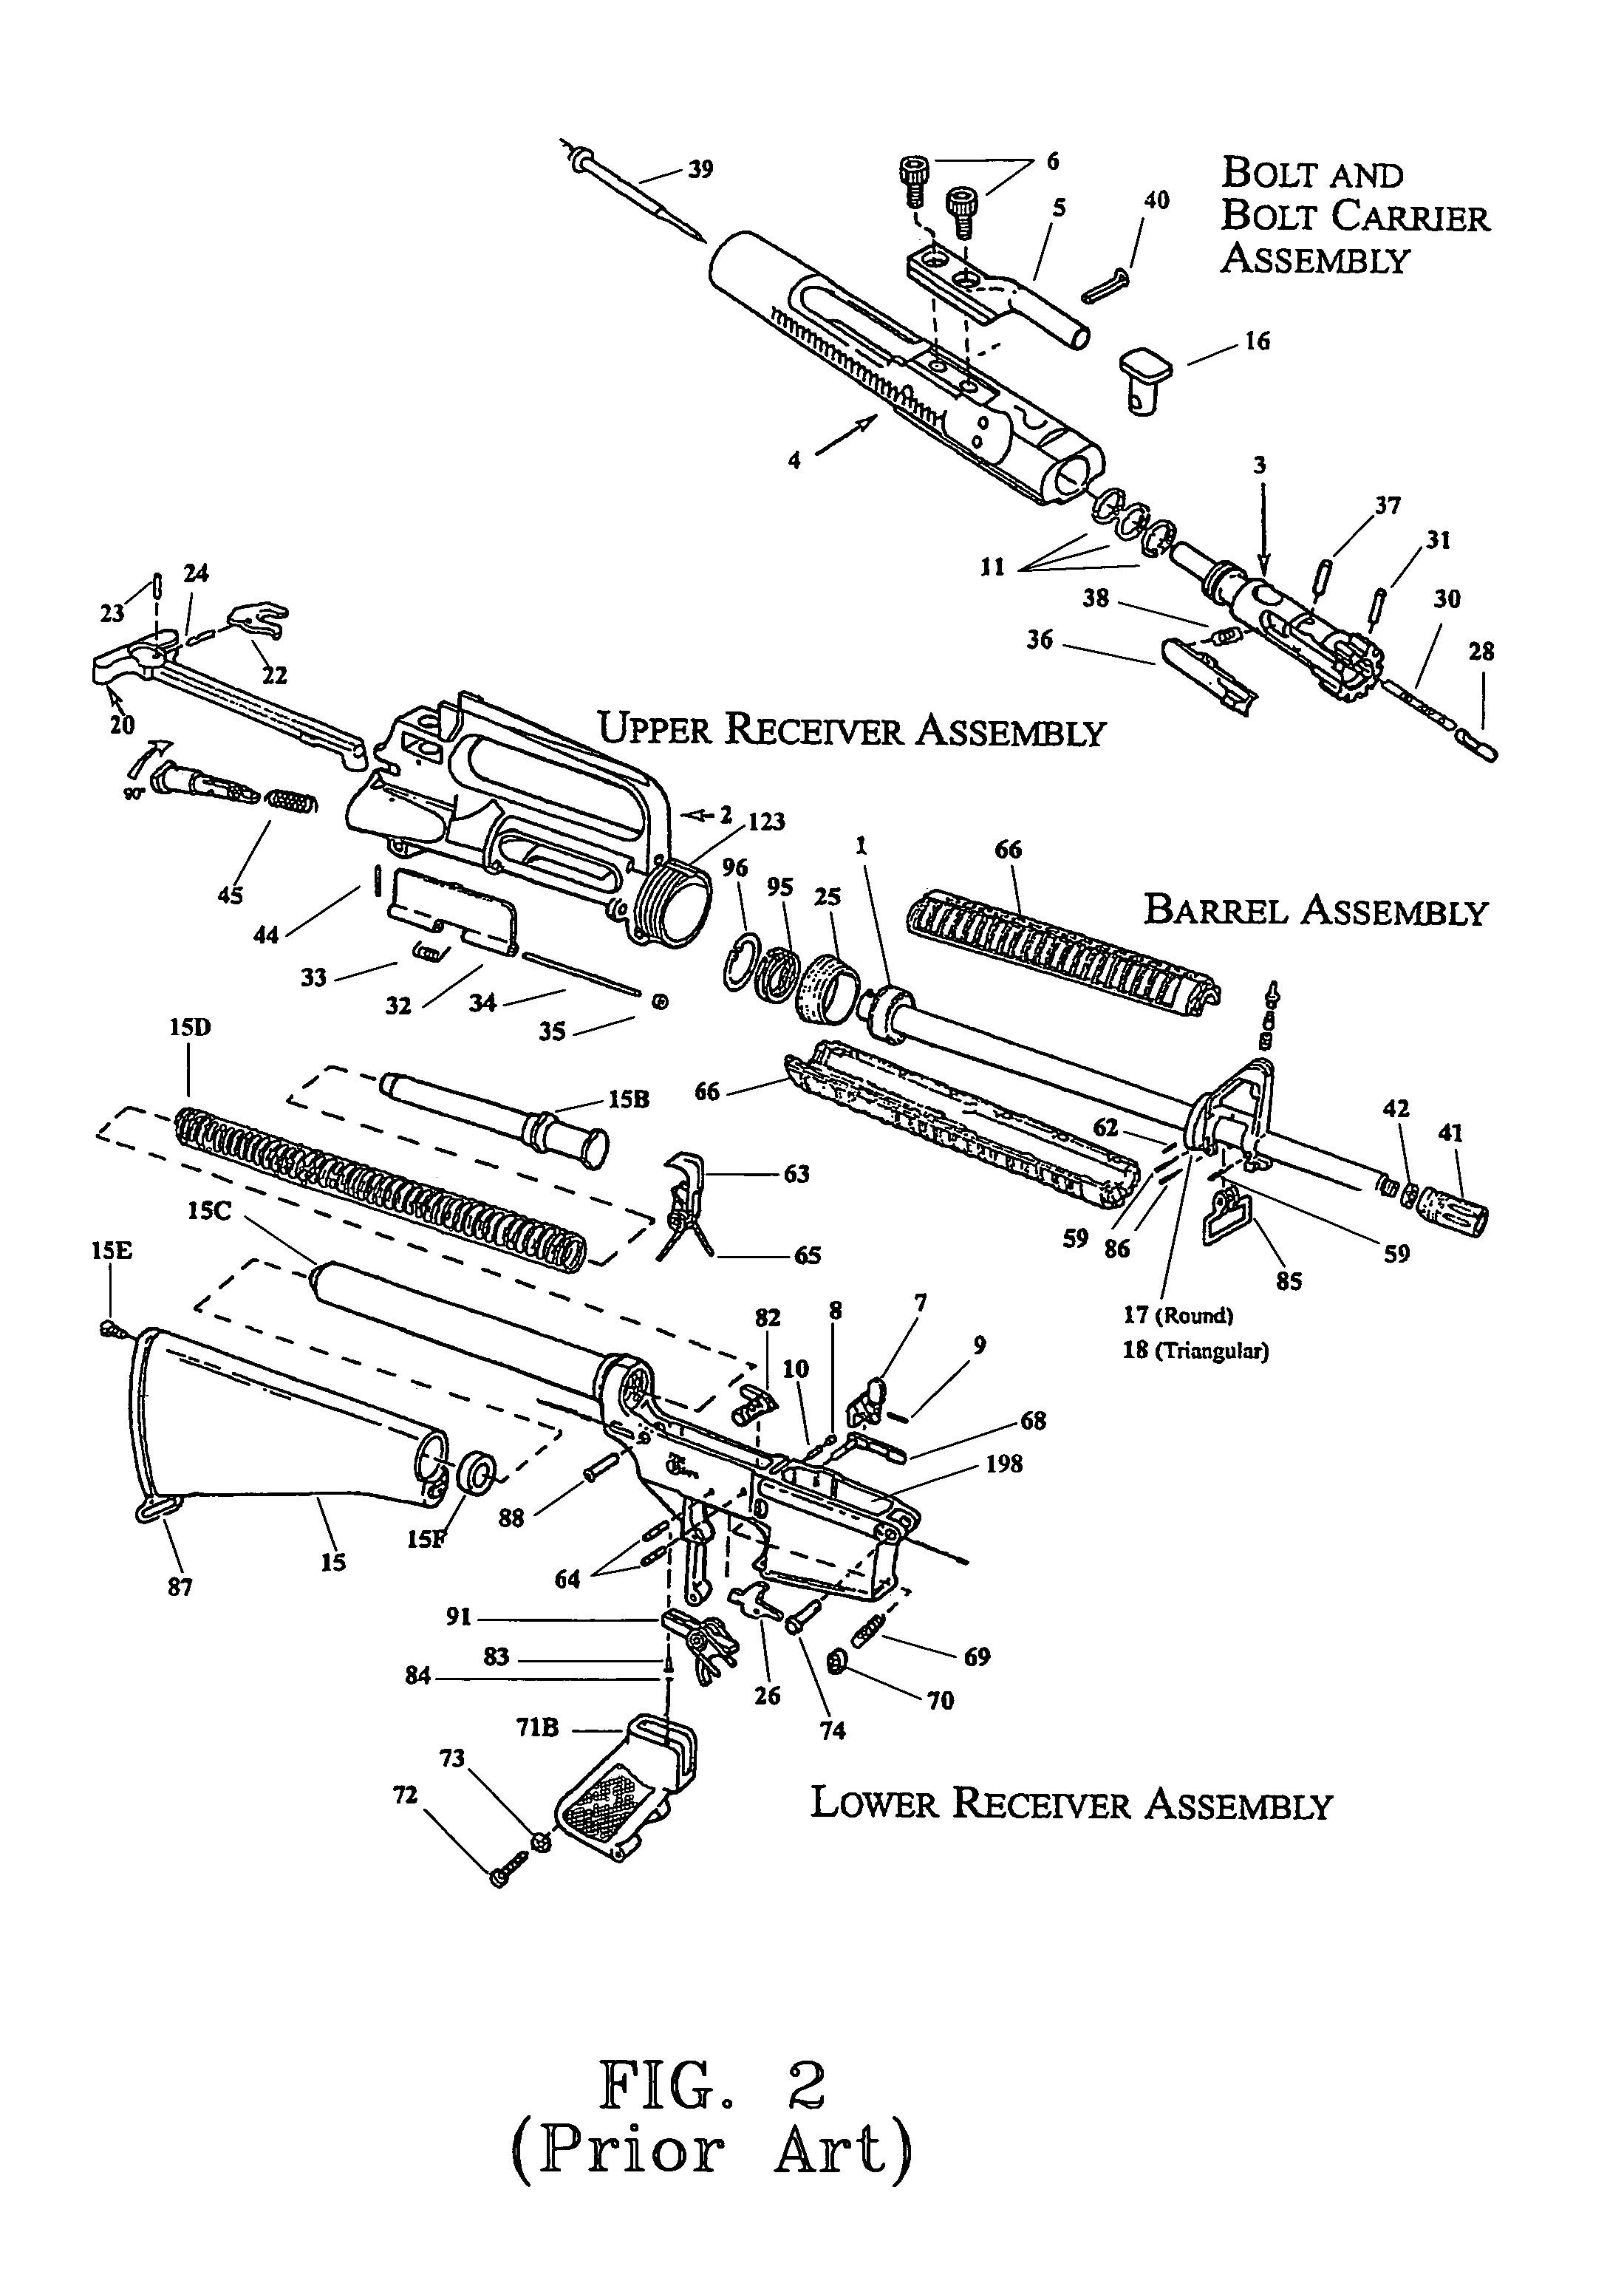 AR-15 Upper Receiver Exploded View Diagram | survival | Pinterest ...